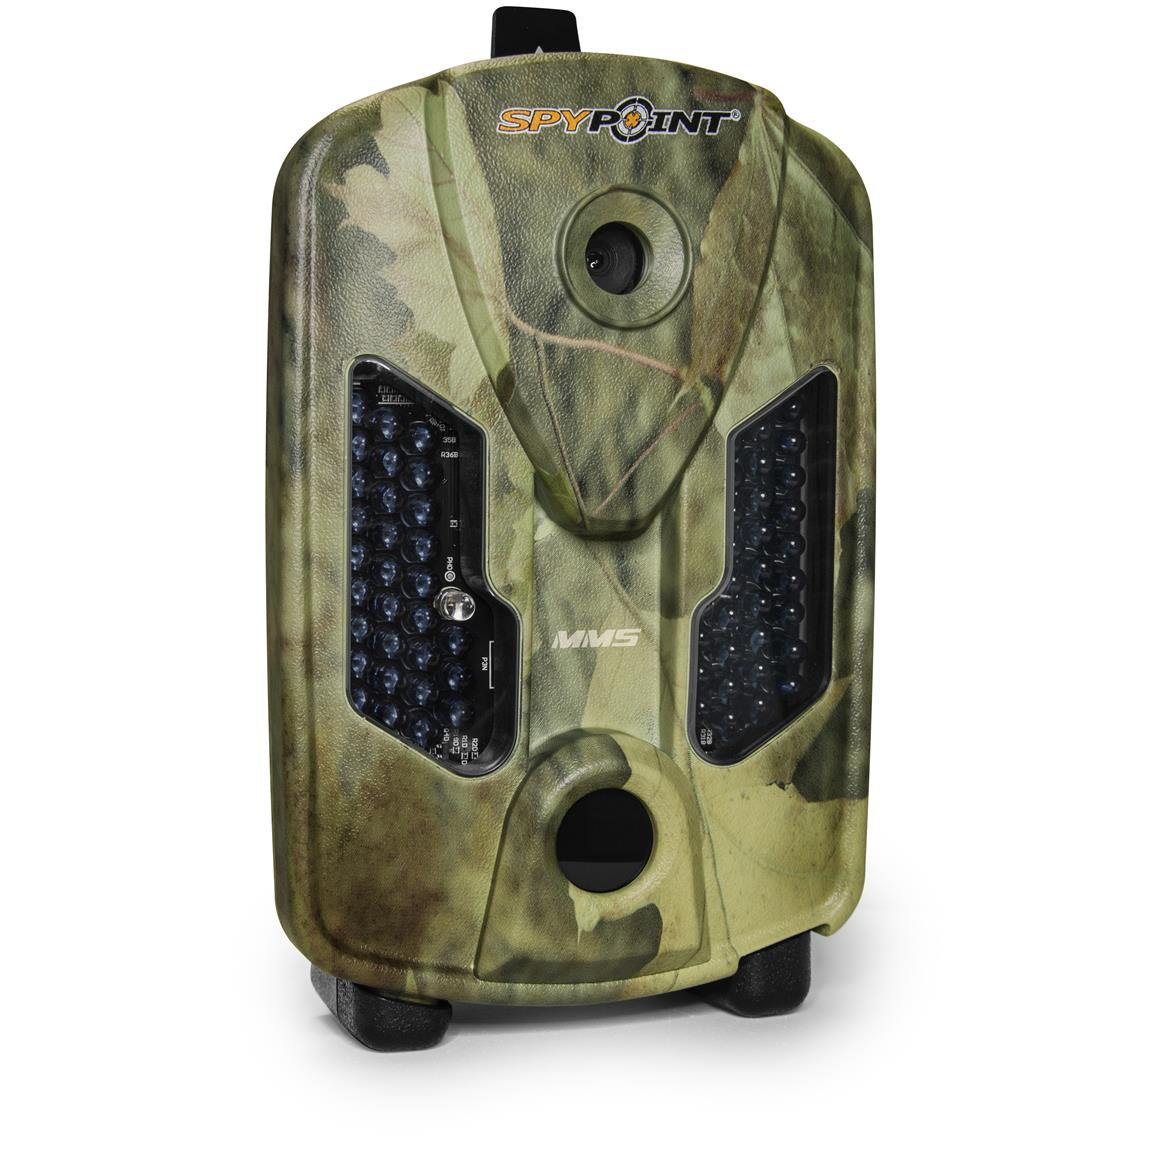 SpyPoint MMS Trail / Game Camera, 10 MP